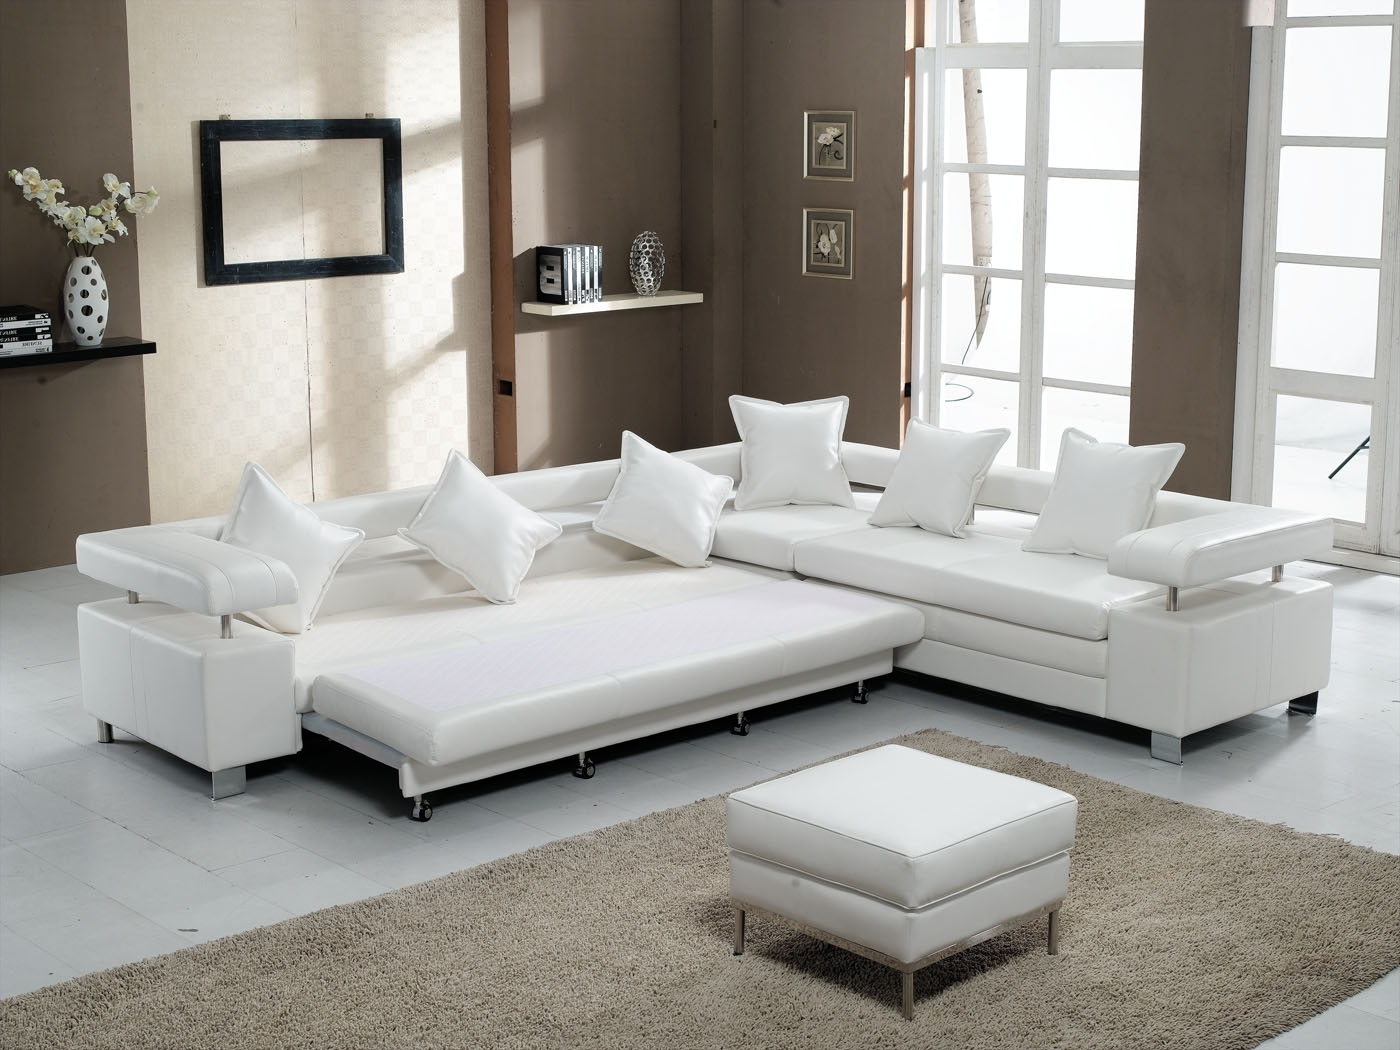 Widely Used 3 Piece White Leather Sectional Sofa With Stainless Steel Legs And With 3 Piece Sectional Sleeper Sofas (View 2 of 20)